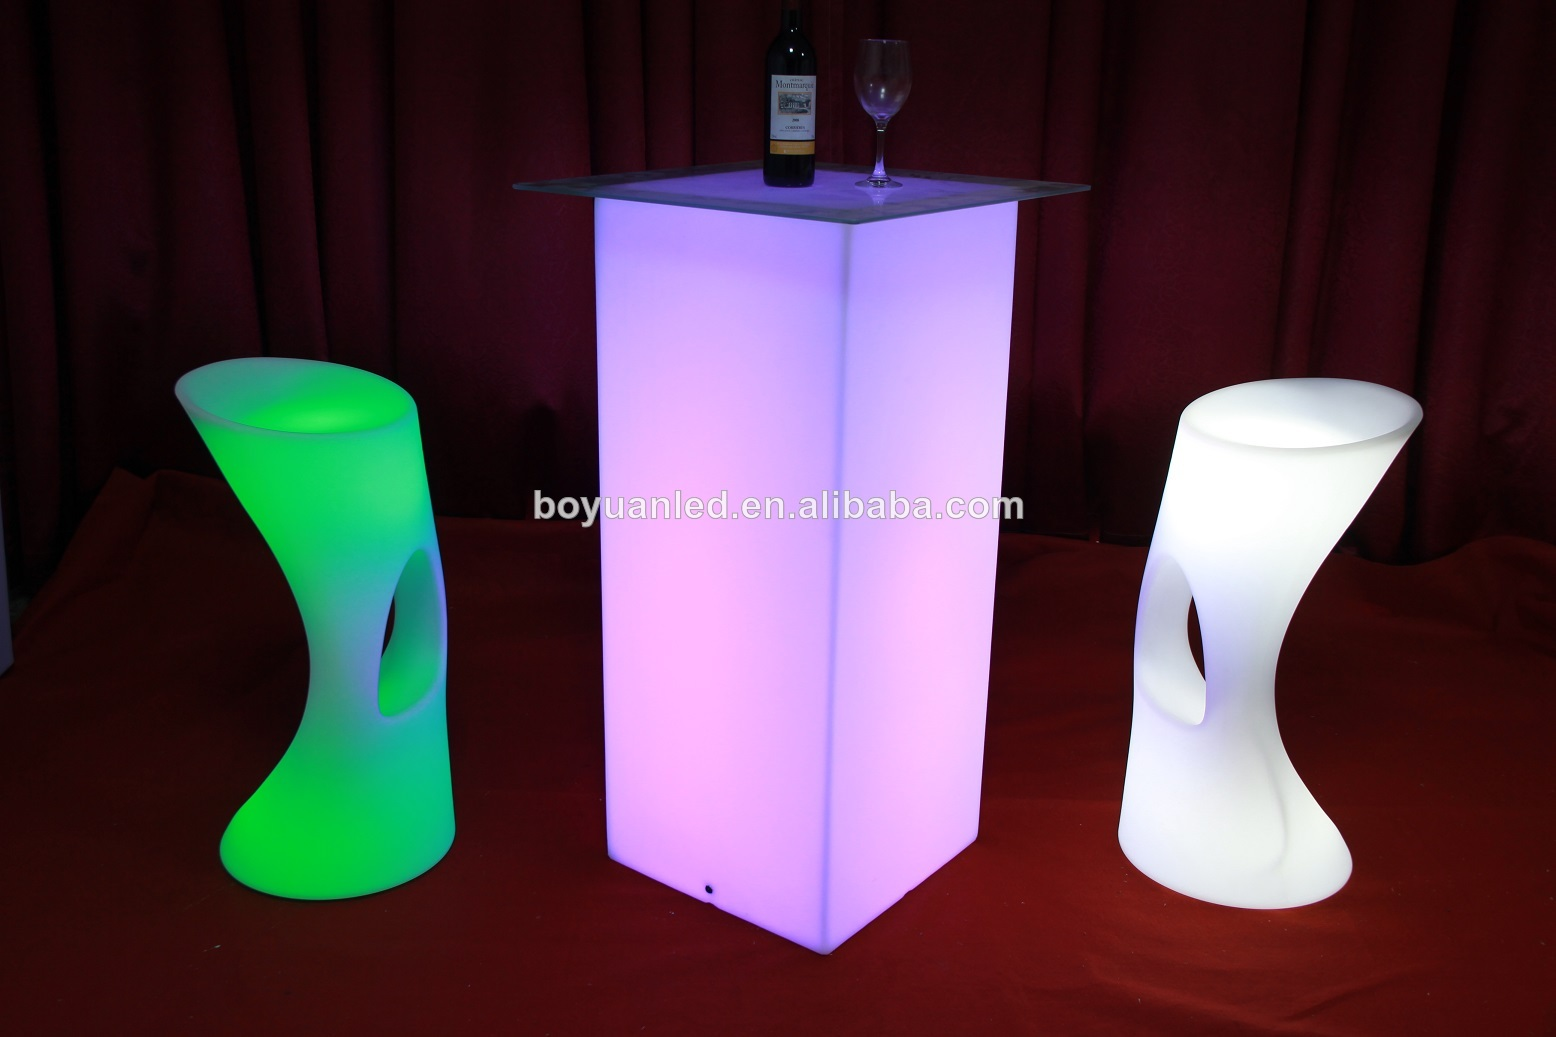 Camping En Plastique Tabouret De Bar Chaise Haute Led